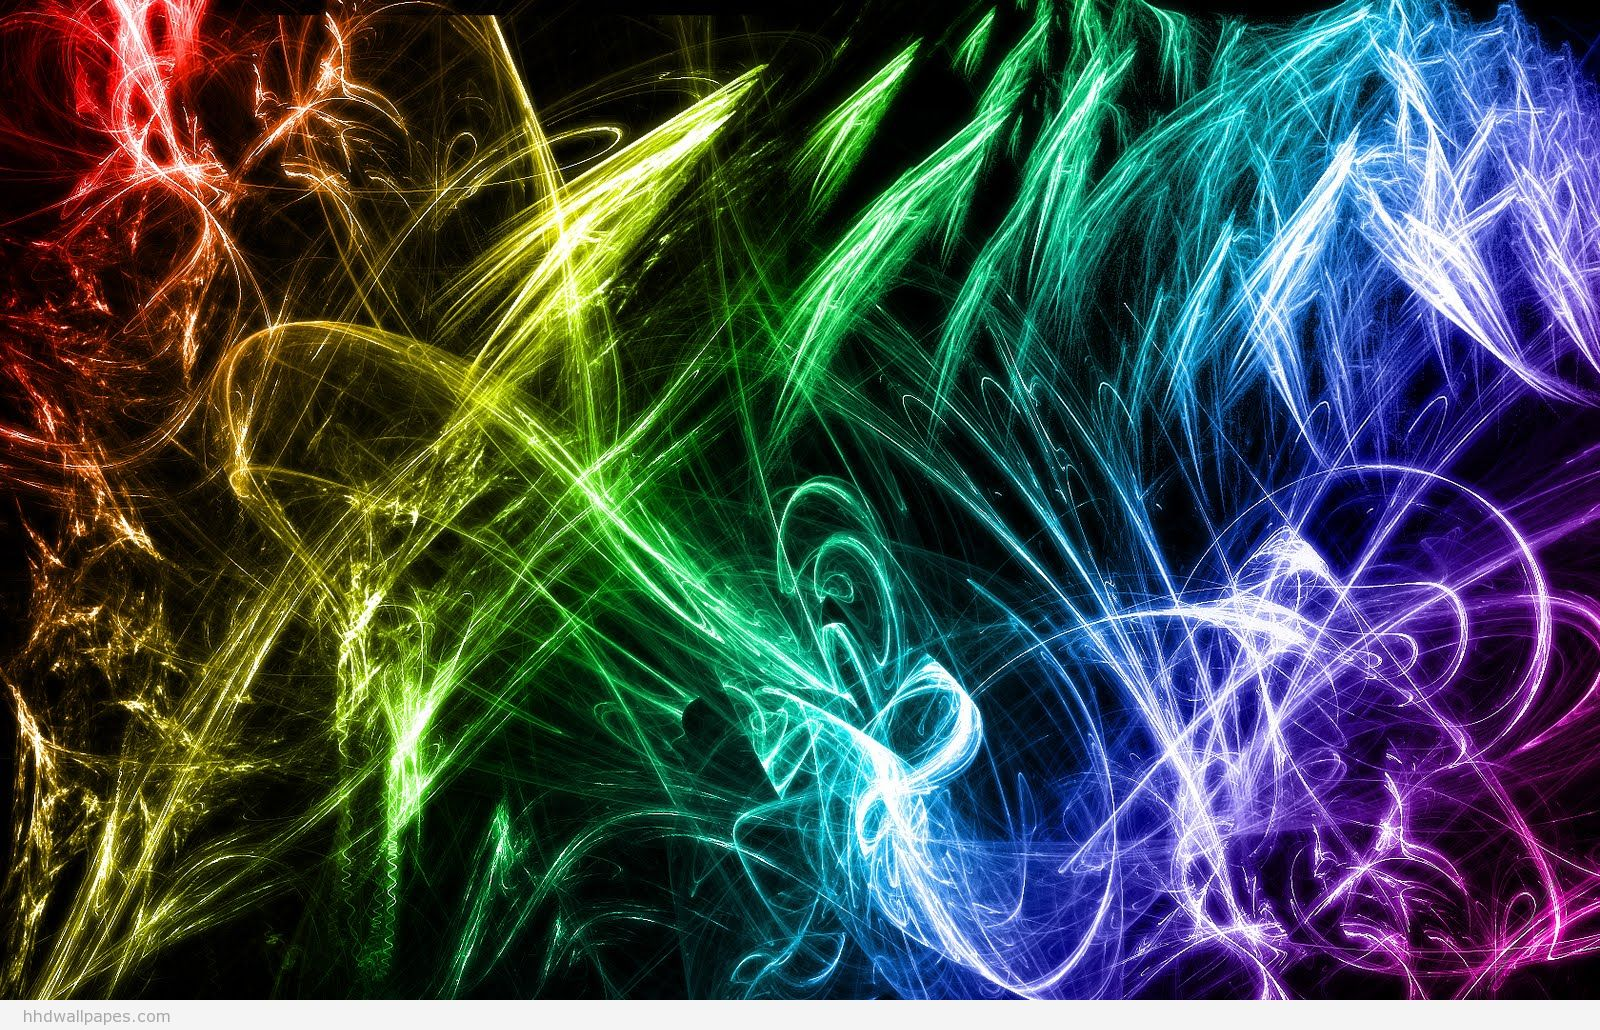 HD Wallpapers Colorful Abstract Desktop Backgrounds | Bollywood HD Most Beautiful Free Wallpapers